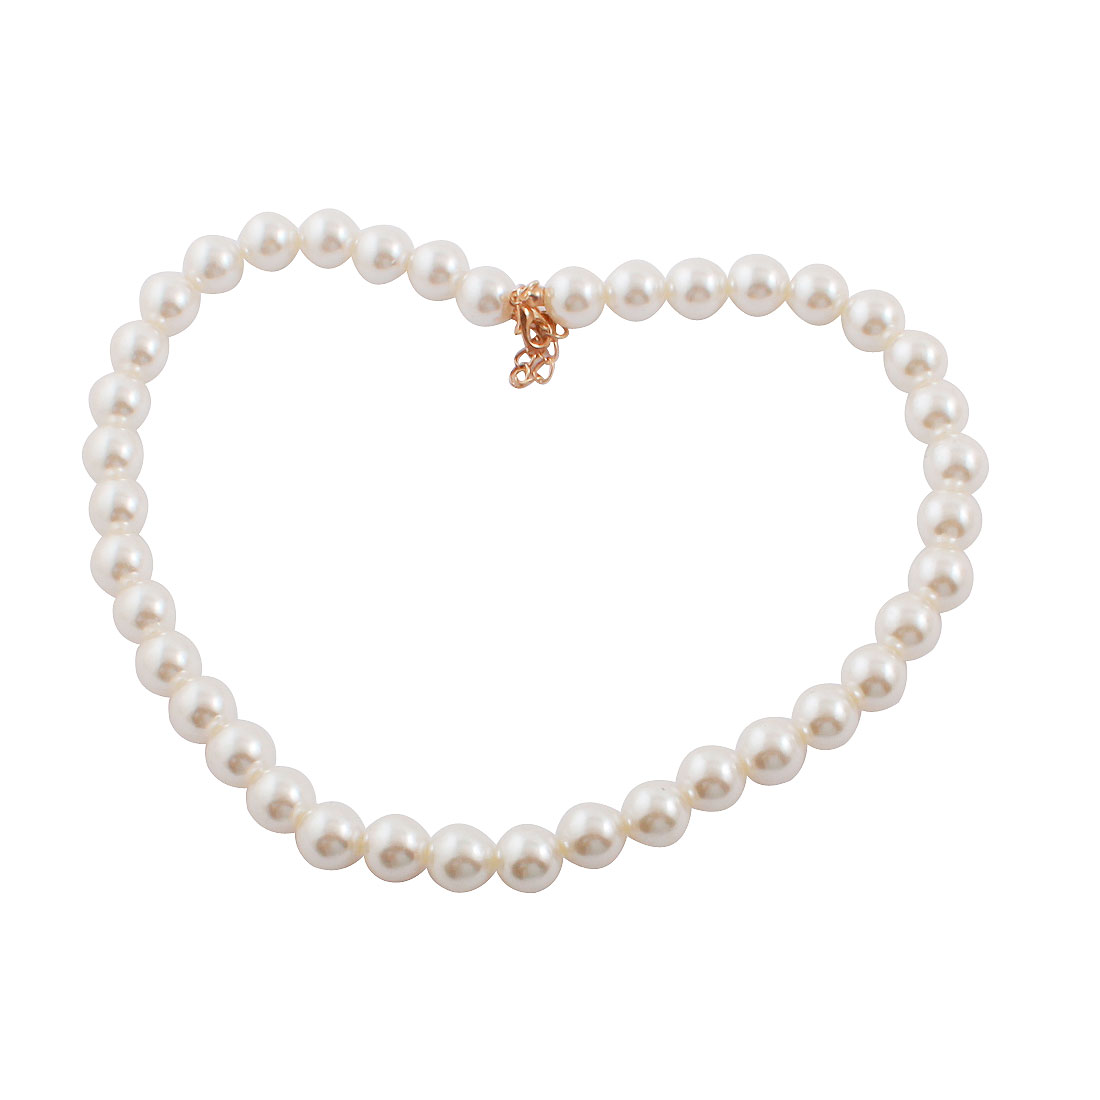 White 12mm Dia Faux Pearl Chain Neck Decoration Necklace for Ladies